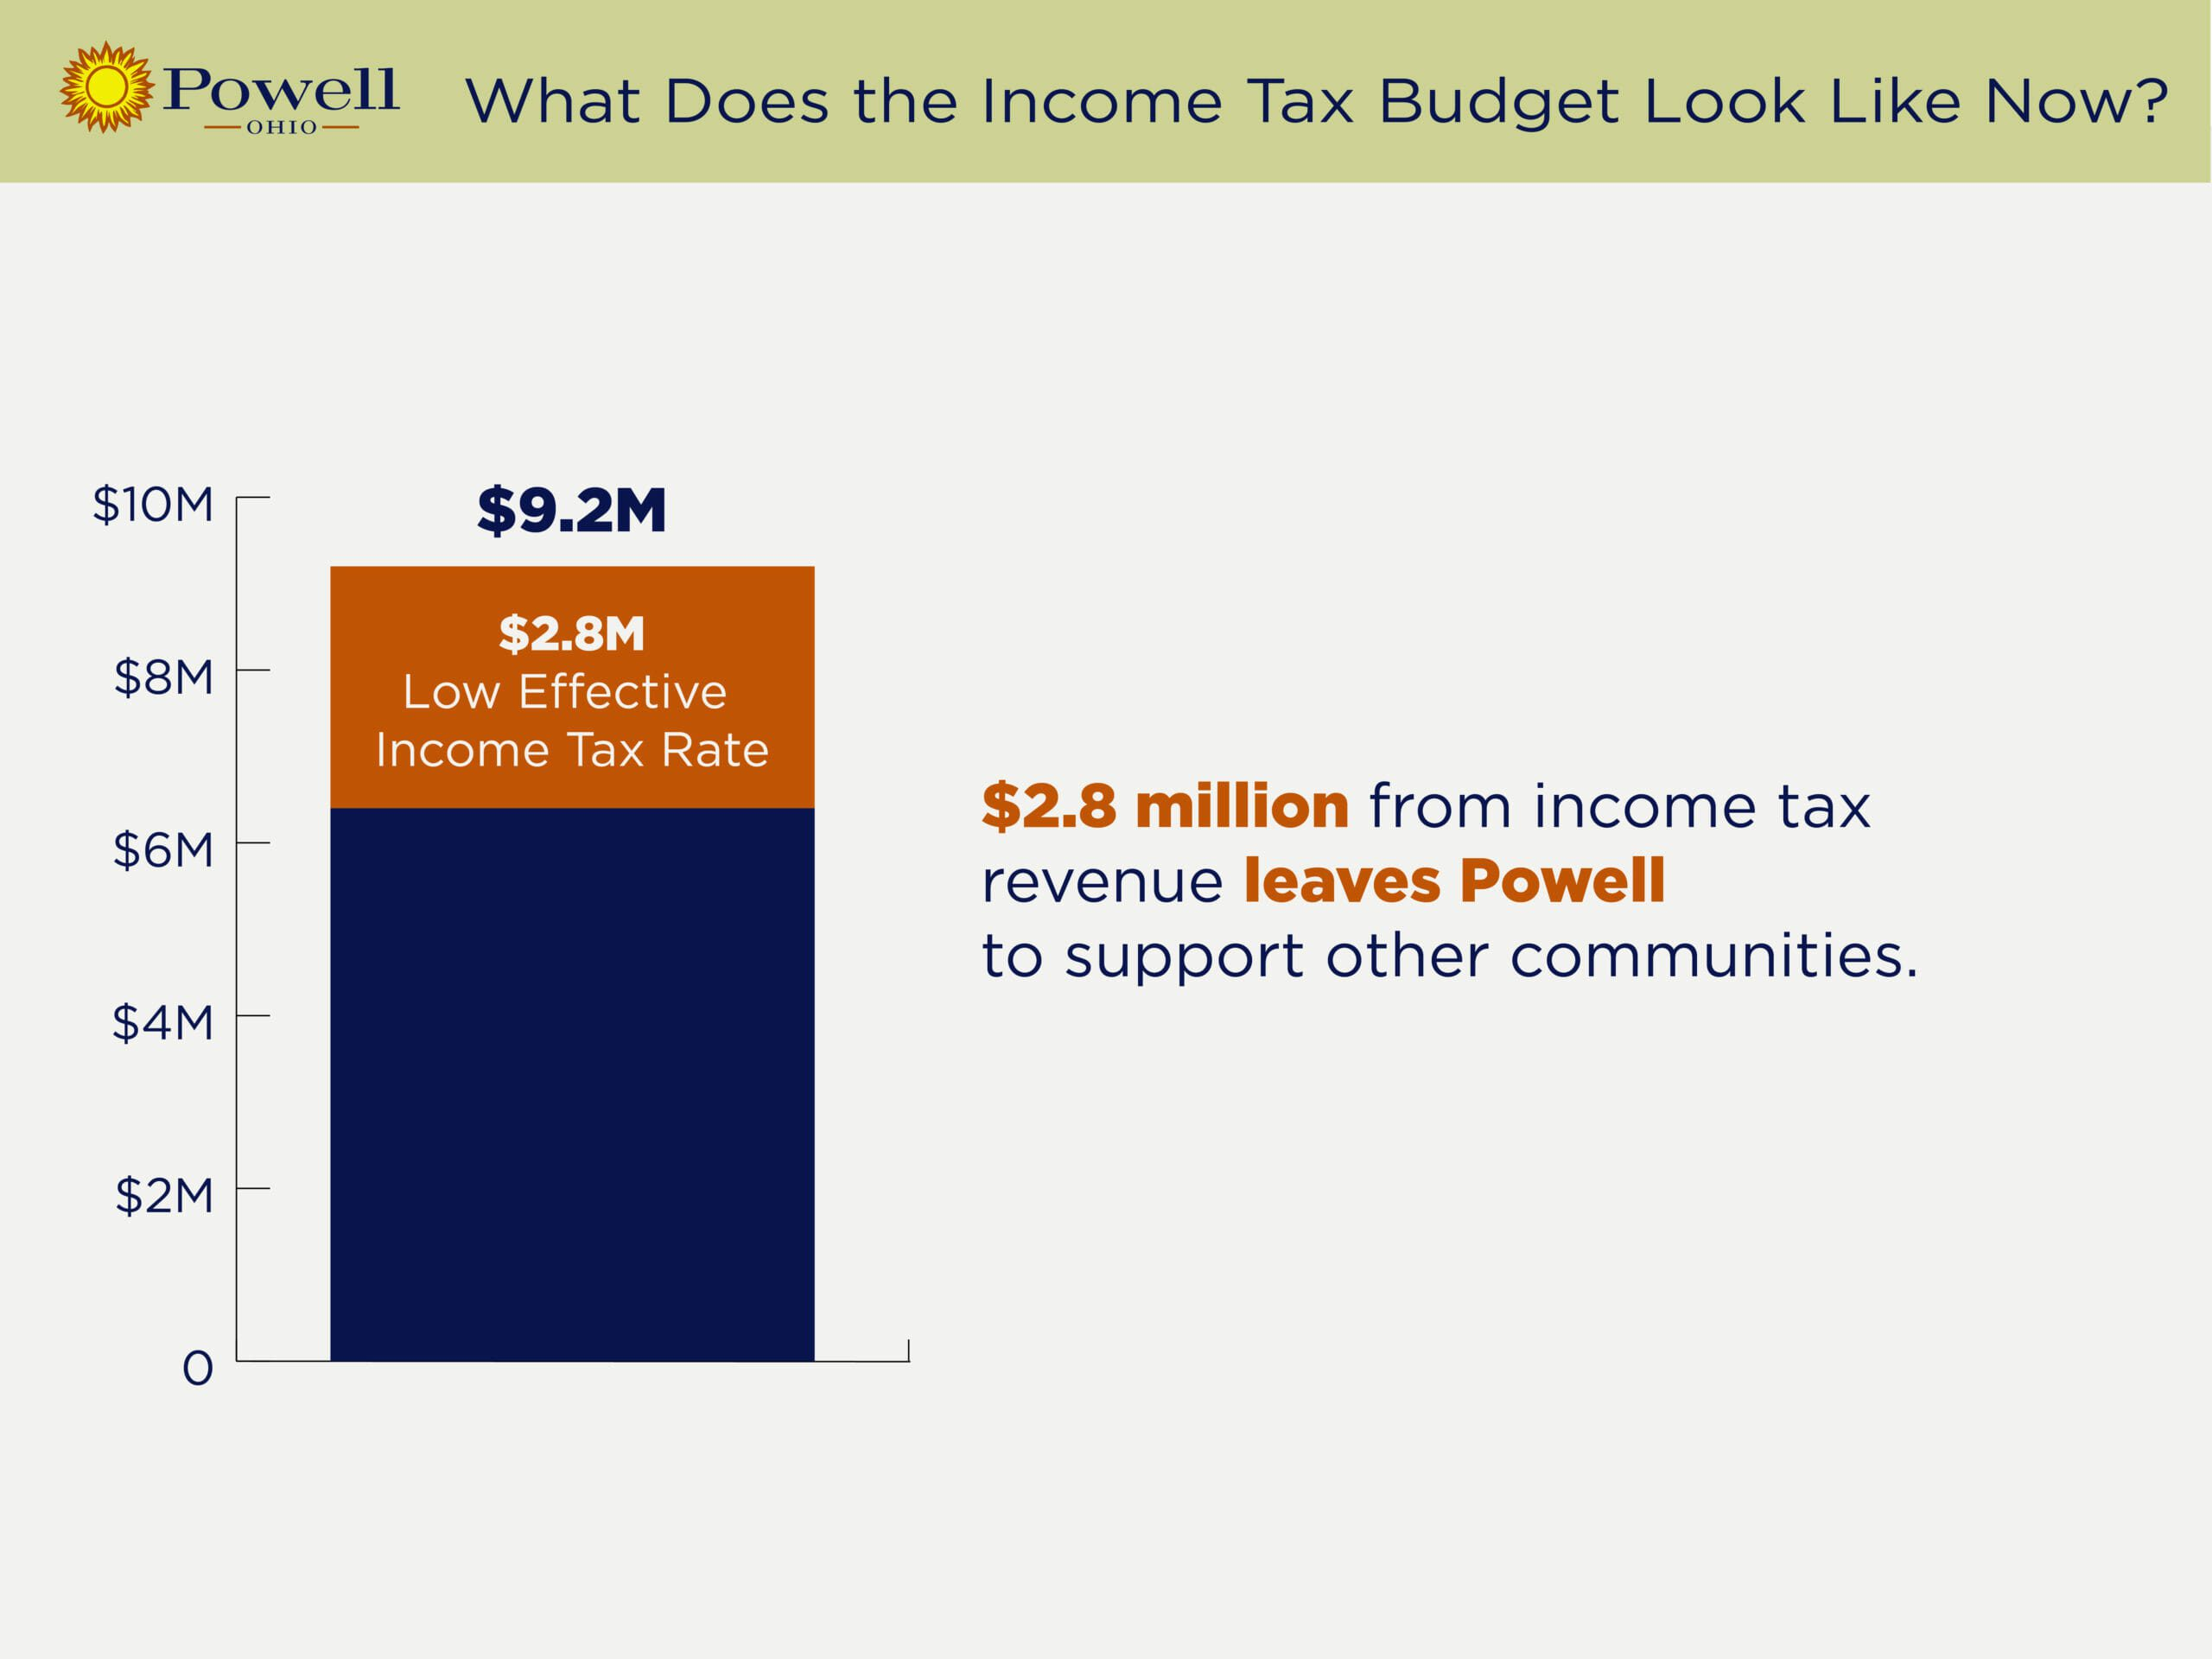 powell_restructuring_projections_v5_-_low_effective_income_tax